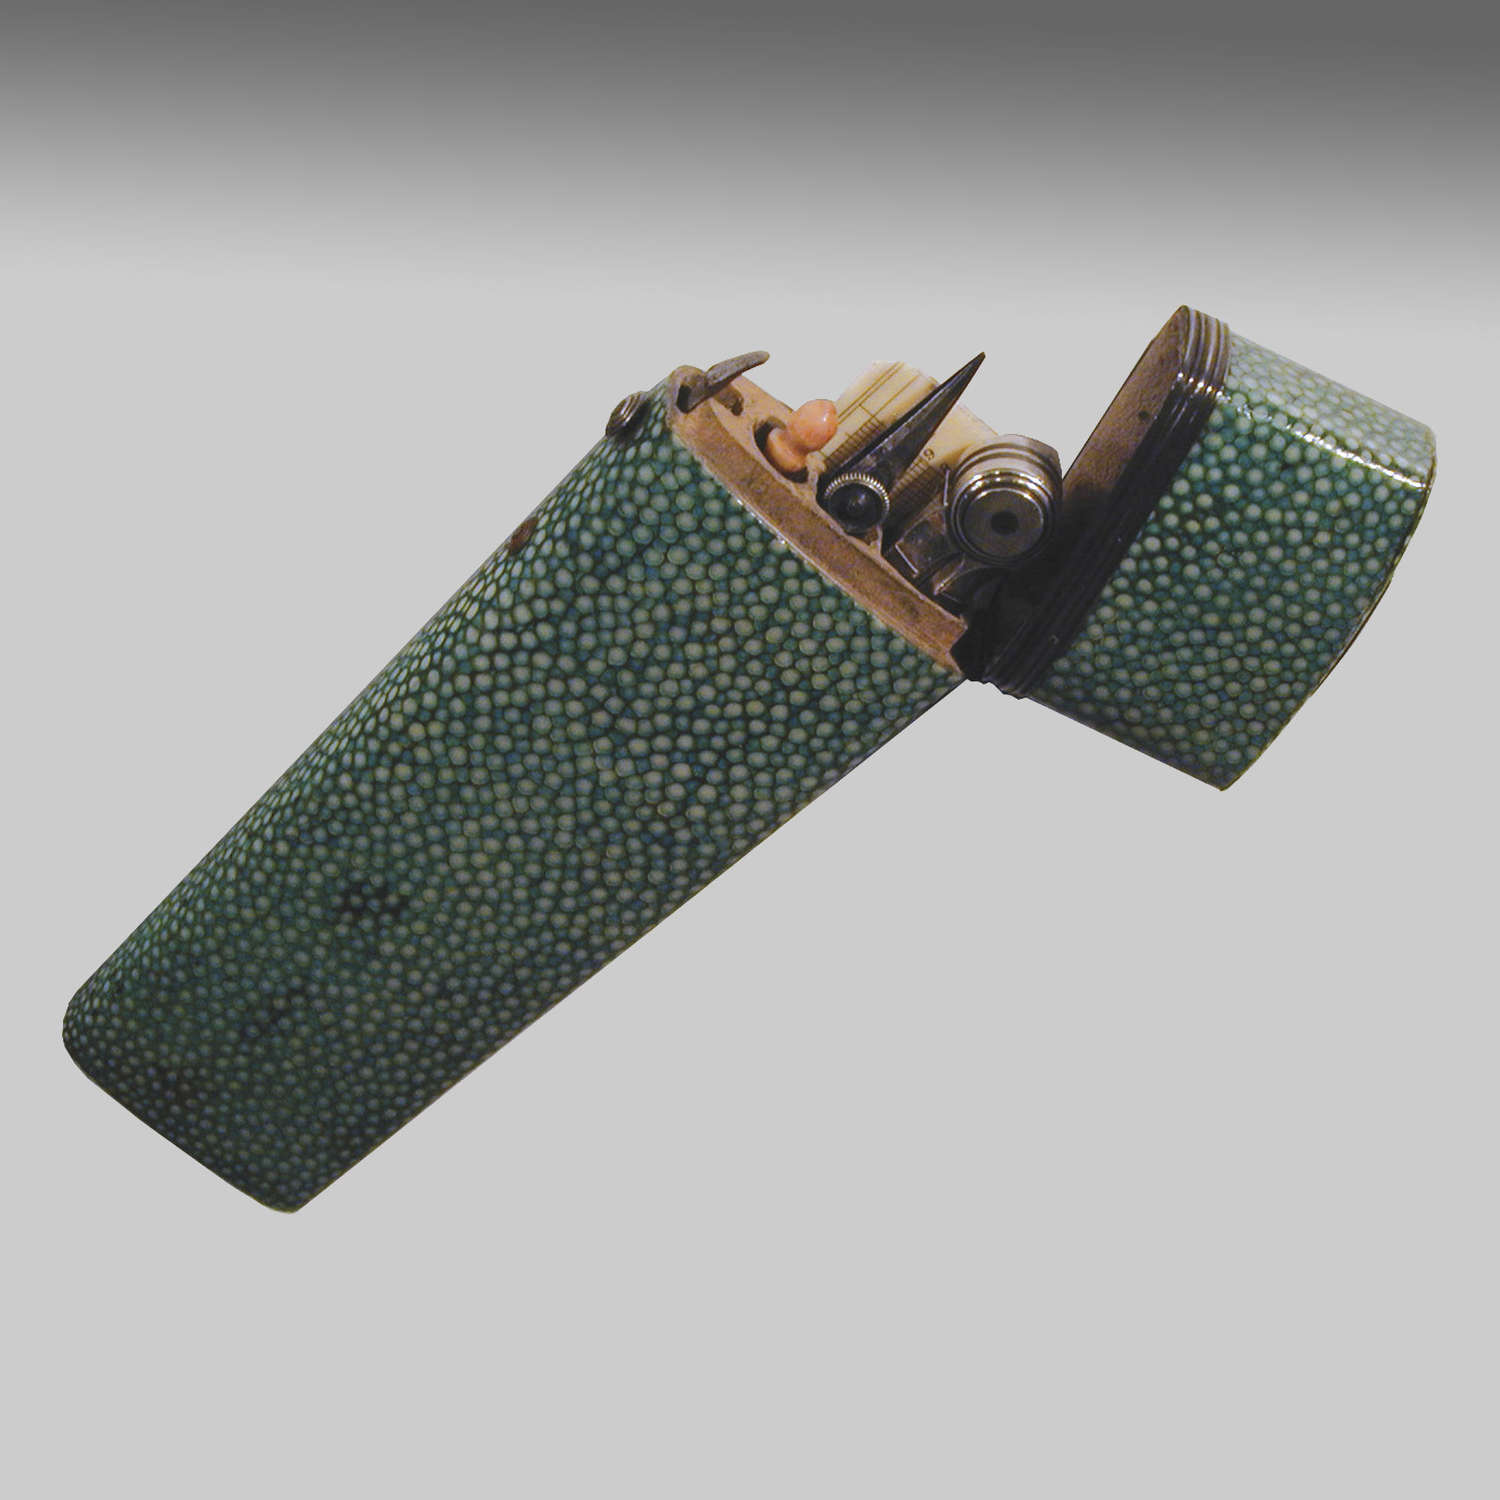 Shagreen cased etui of cartographer's drawing instruments